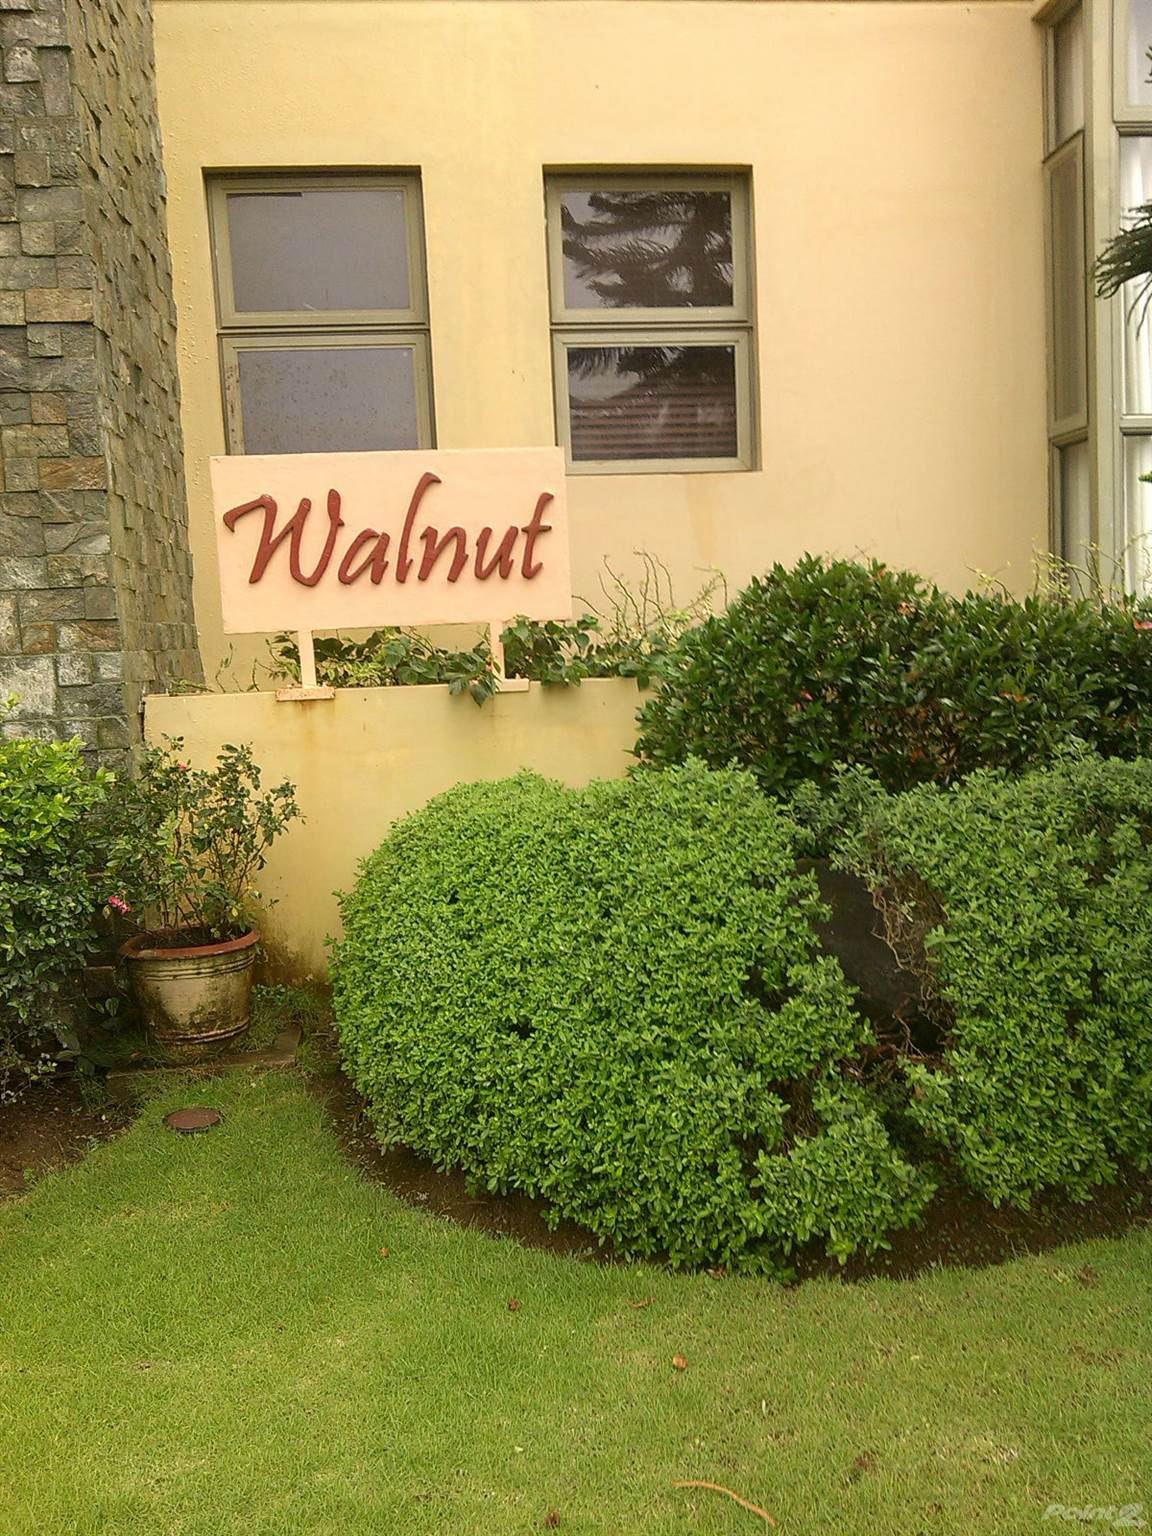 Apartment for sale in Walnut, Woodridge Place, Tagaytay, Cavite ,4120  , Philippines